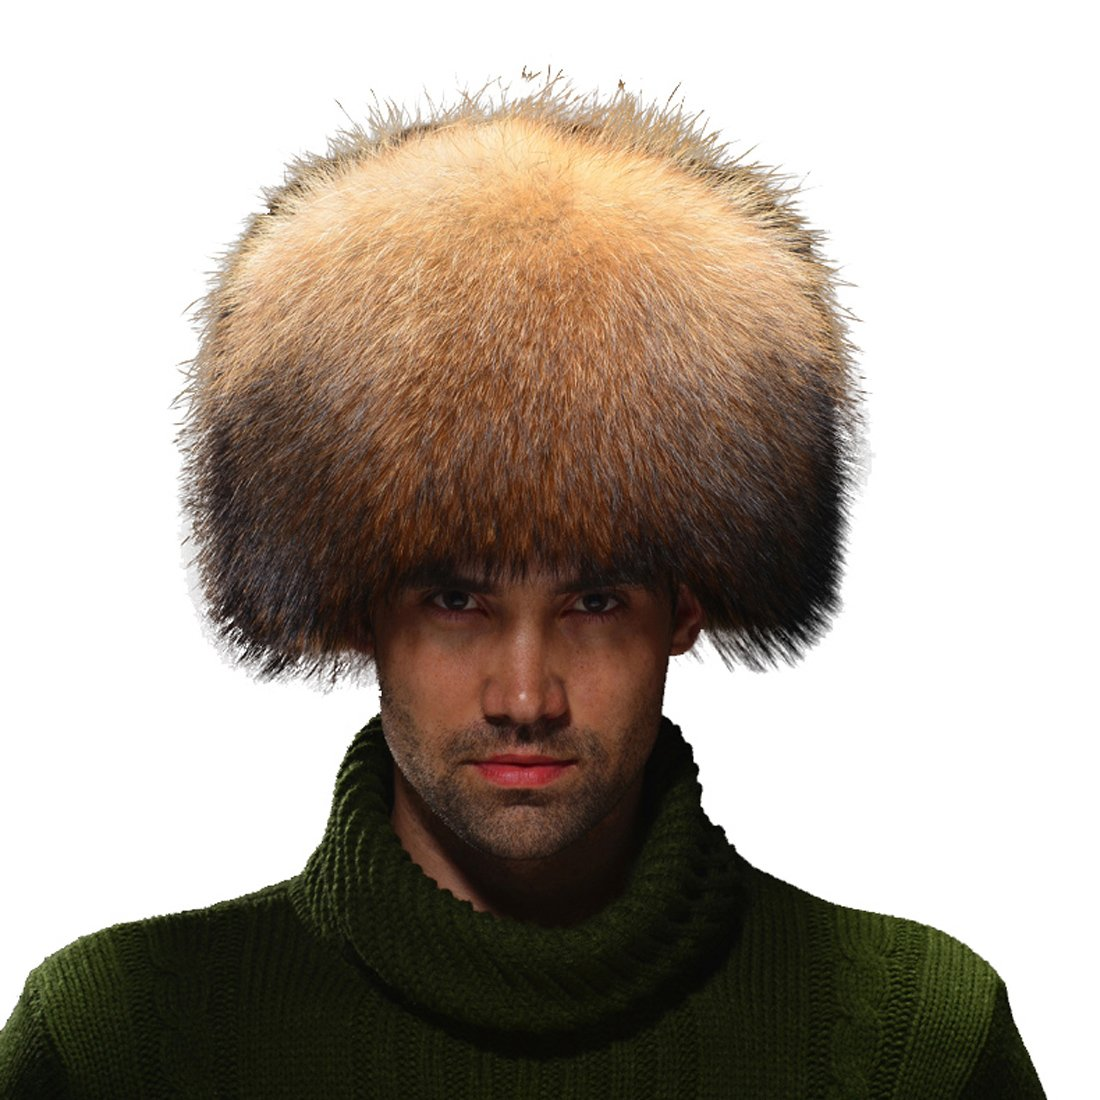 URSFUR Coonskin Cap Raccoon Fur Trapper Hat (One Size Fits All, Natural Color)